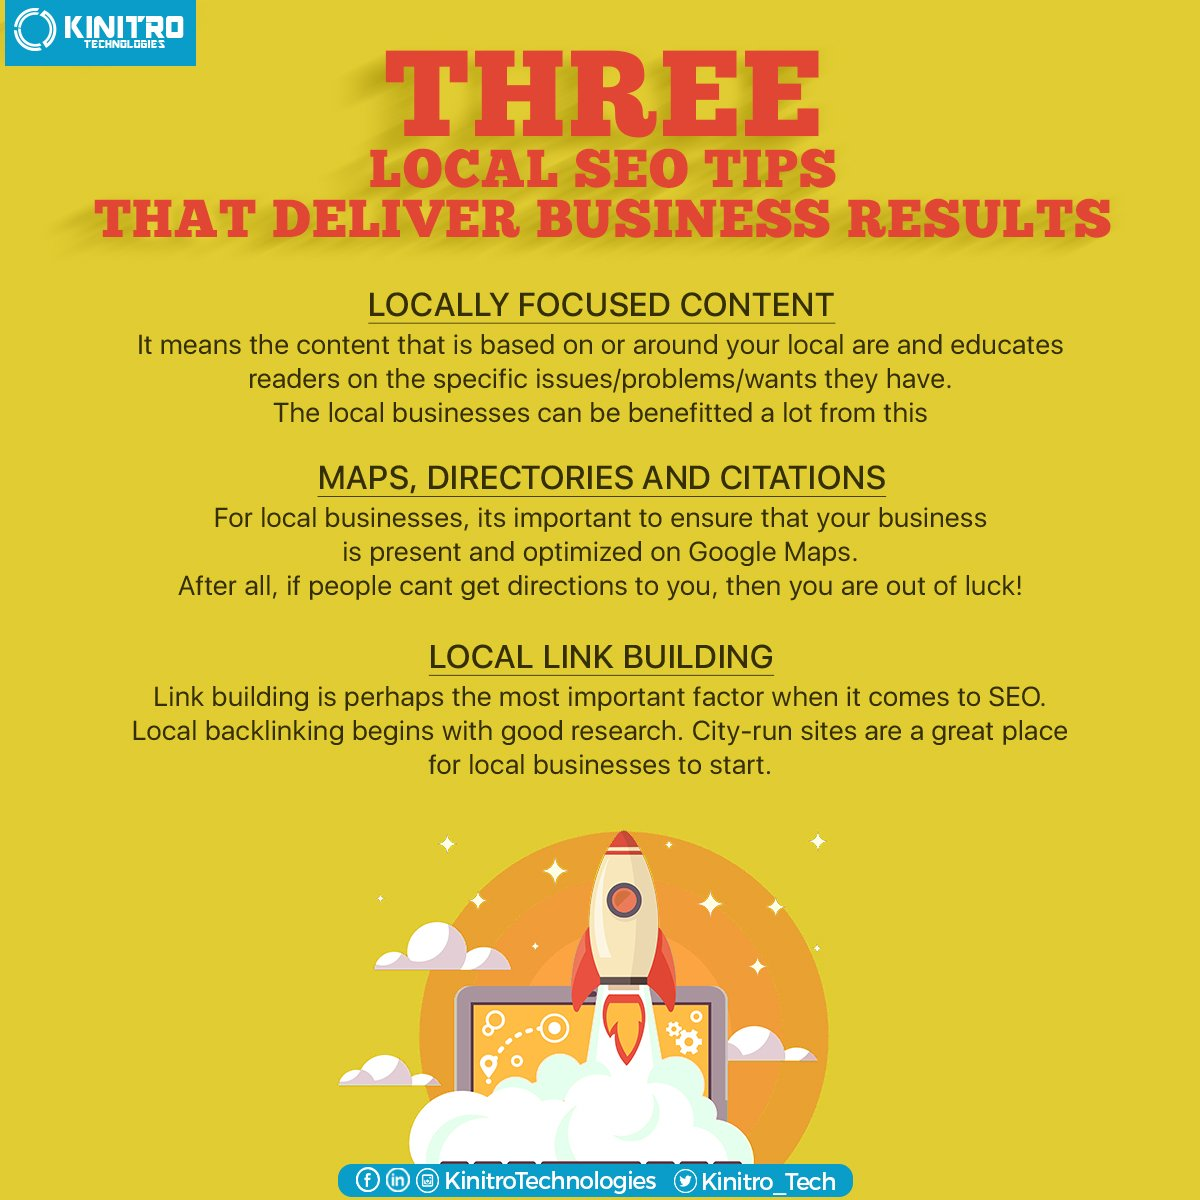 Three local #seo tips that deliver business results! #Seotips #DigitalMarketing https://t.co/fP8ti4FGZn